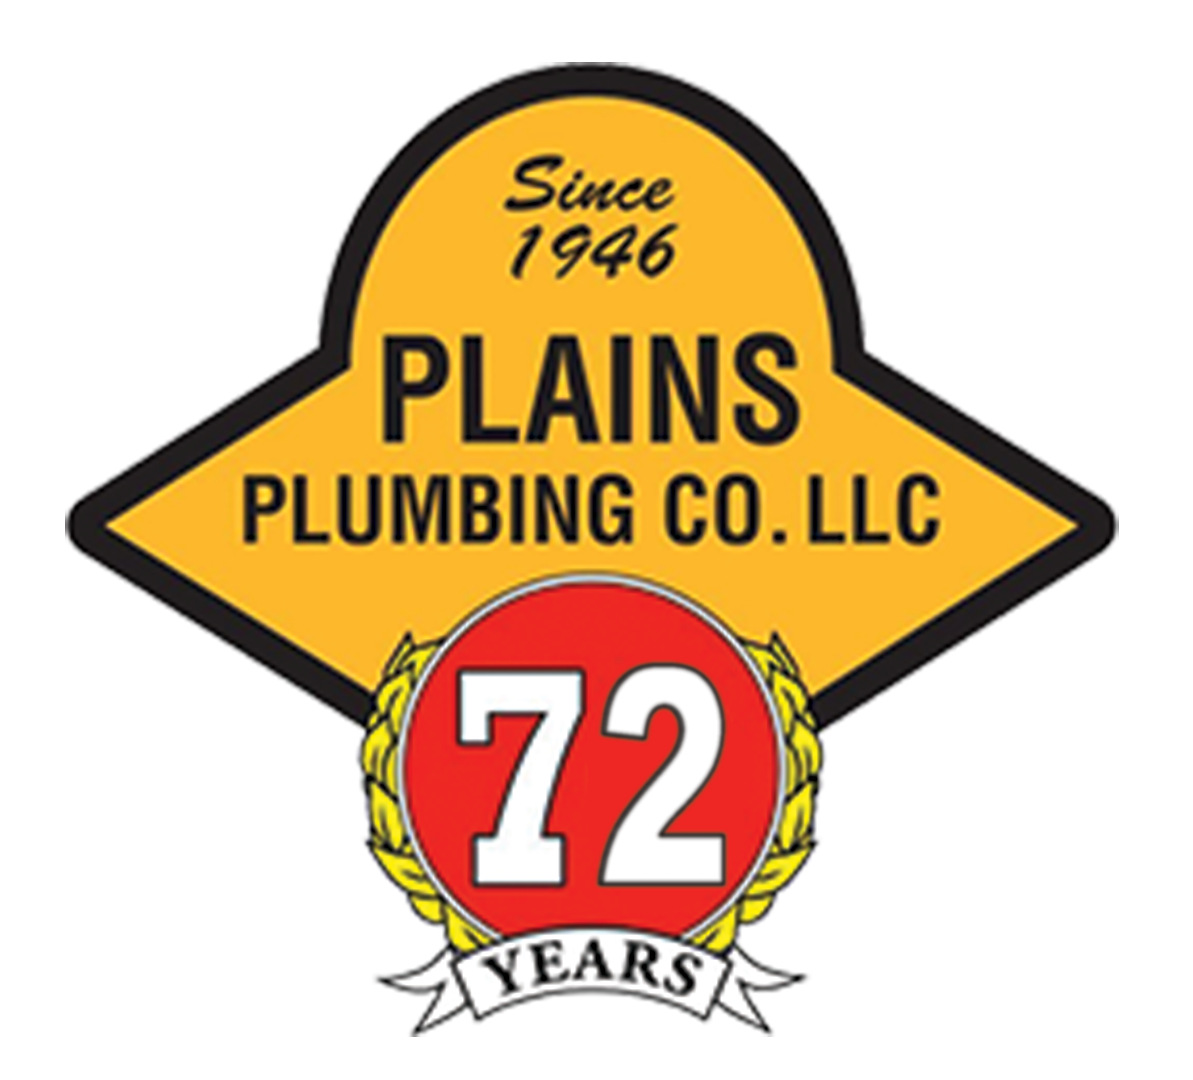 72 Years Plains Plumbing Logo